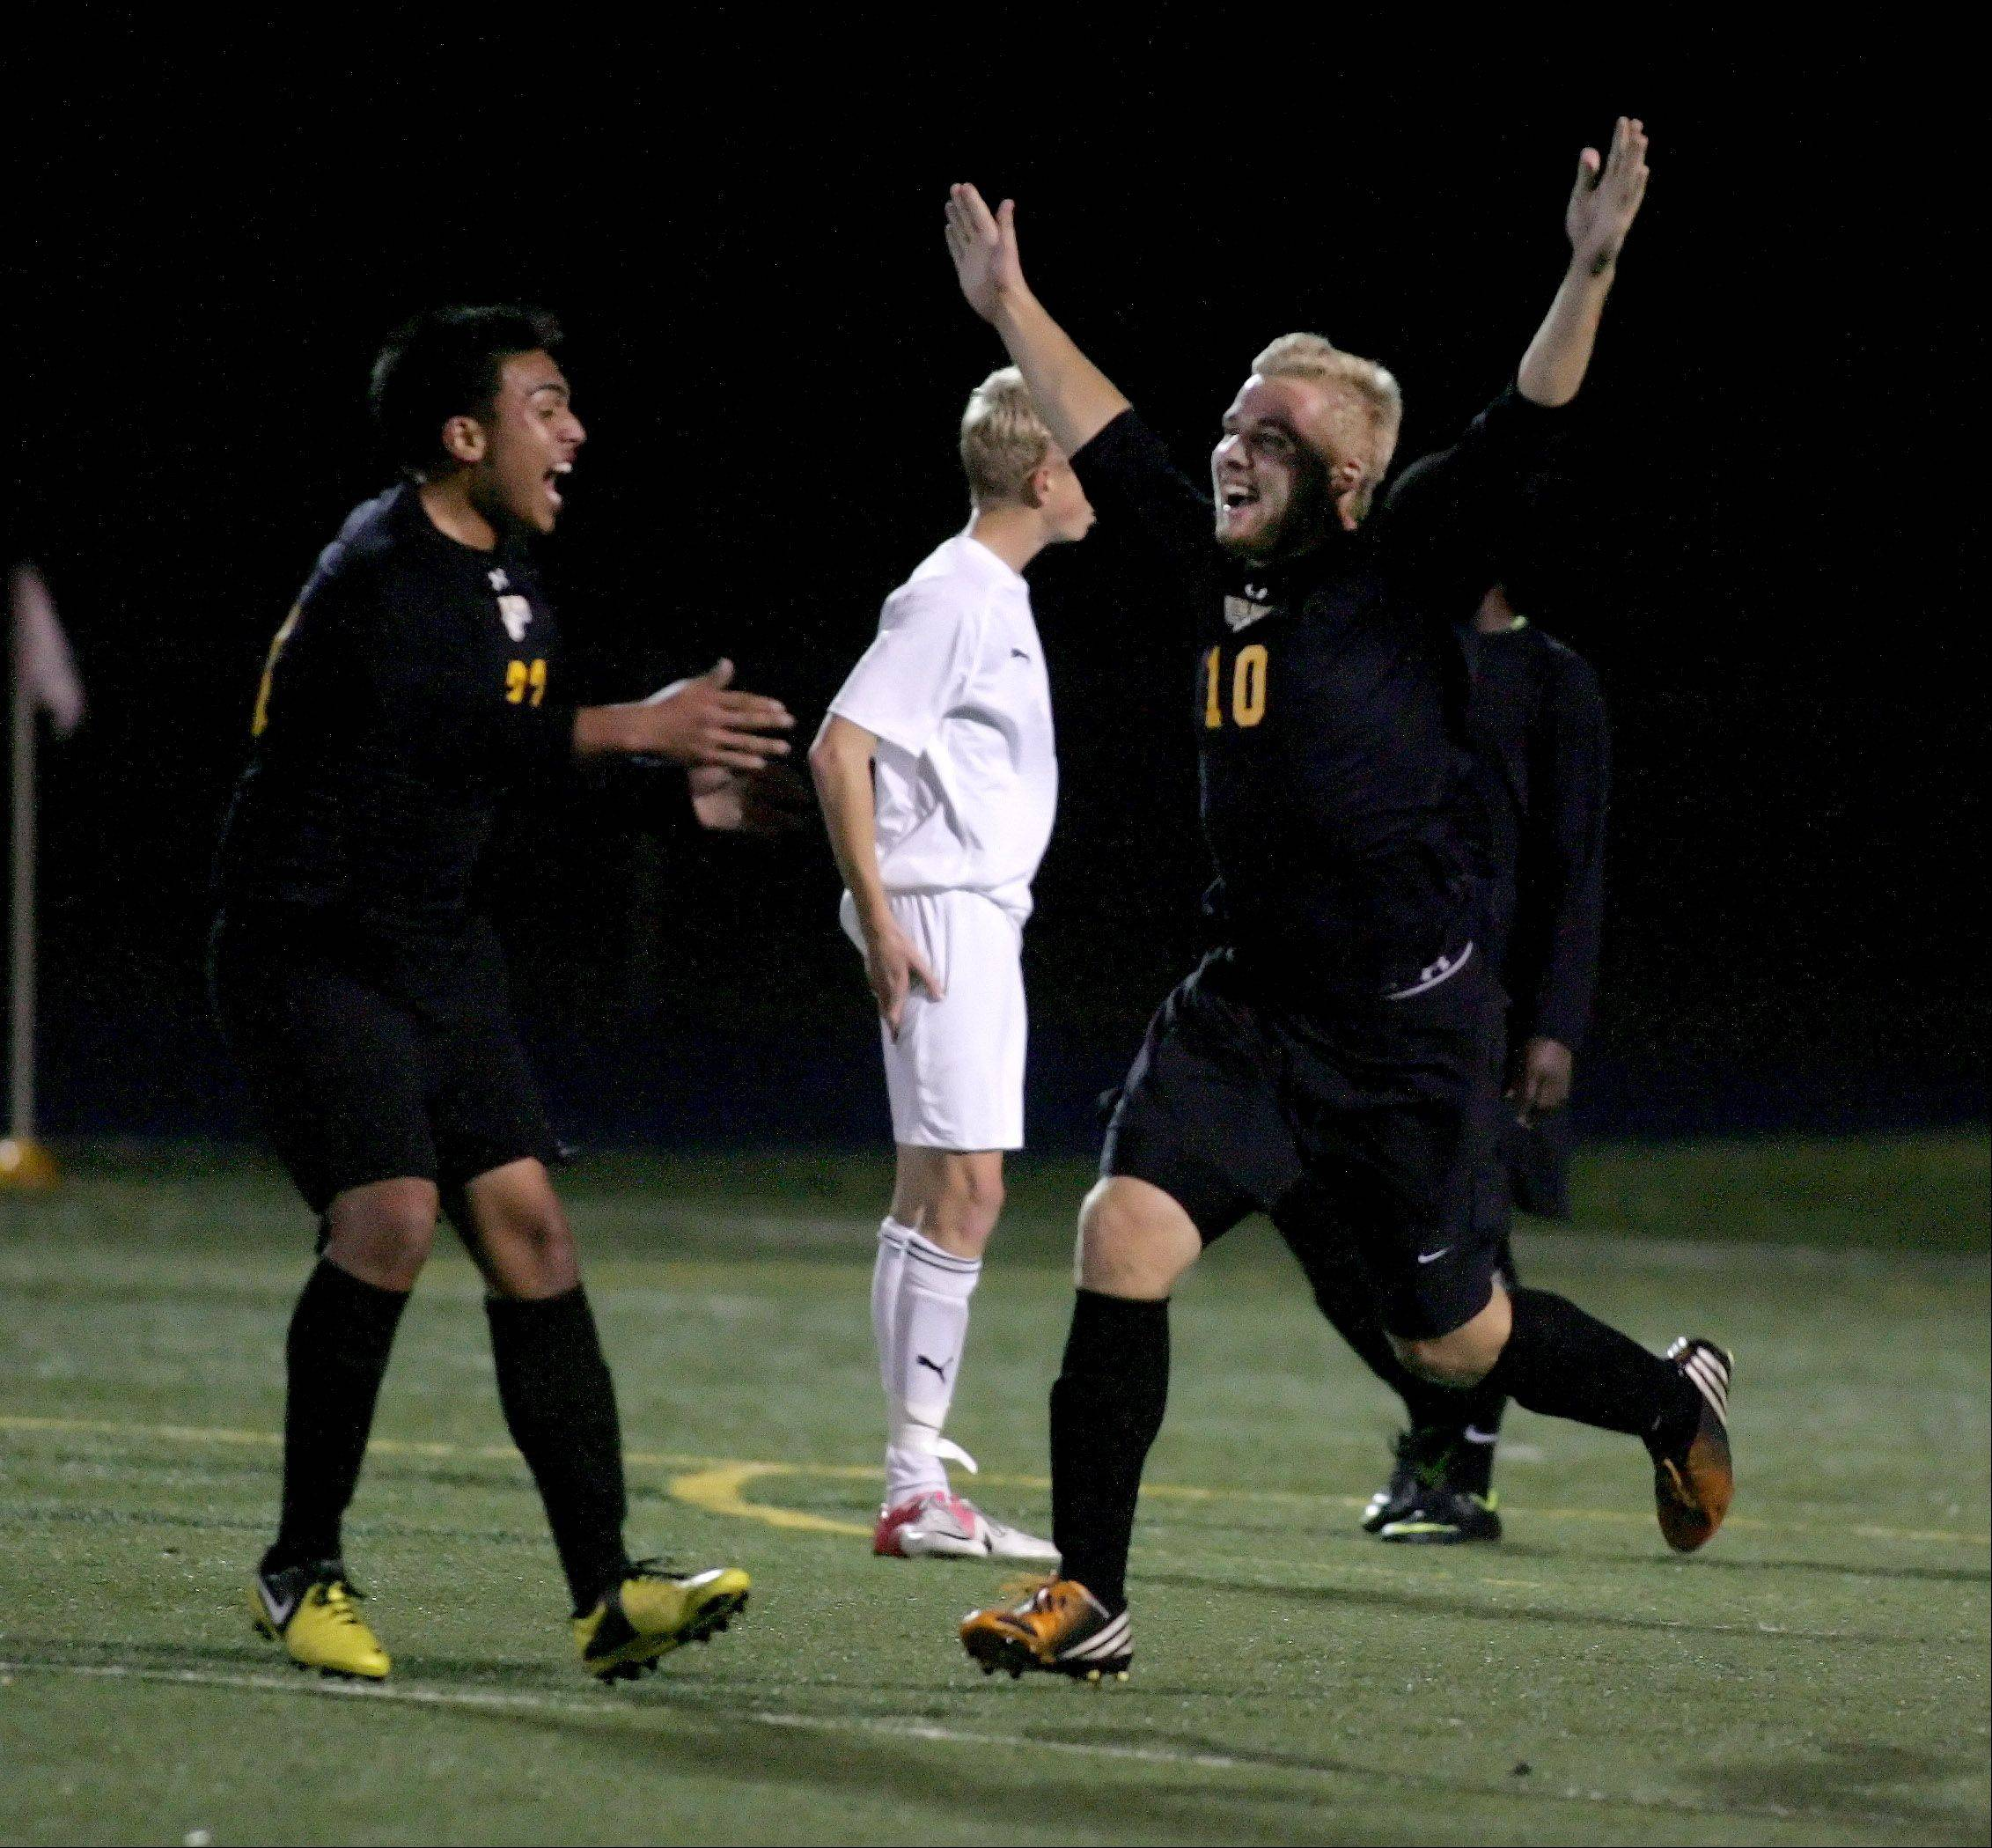 Jake Goehring of Metea Valley, right, celebrates after scoring a goal in the second half against Wheaton Warrenville South in boys Class 3A sectional soccer in West Chicago. Metea Valley won 1-0.